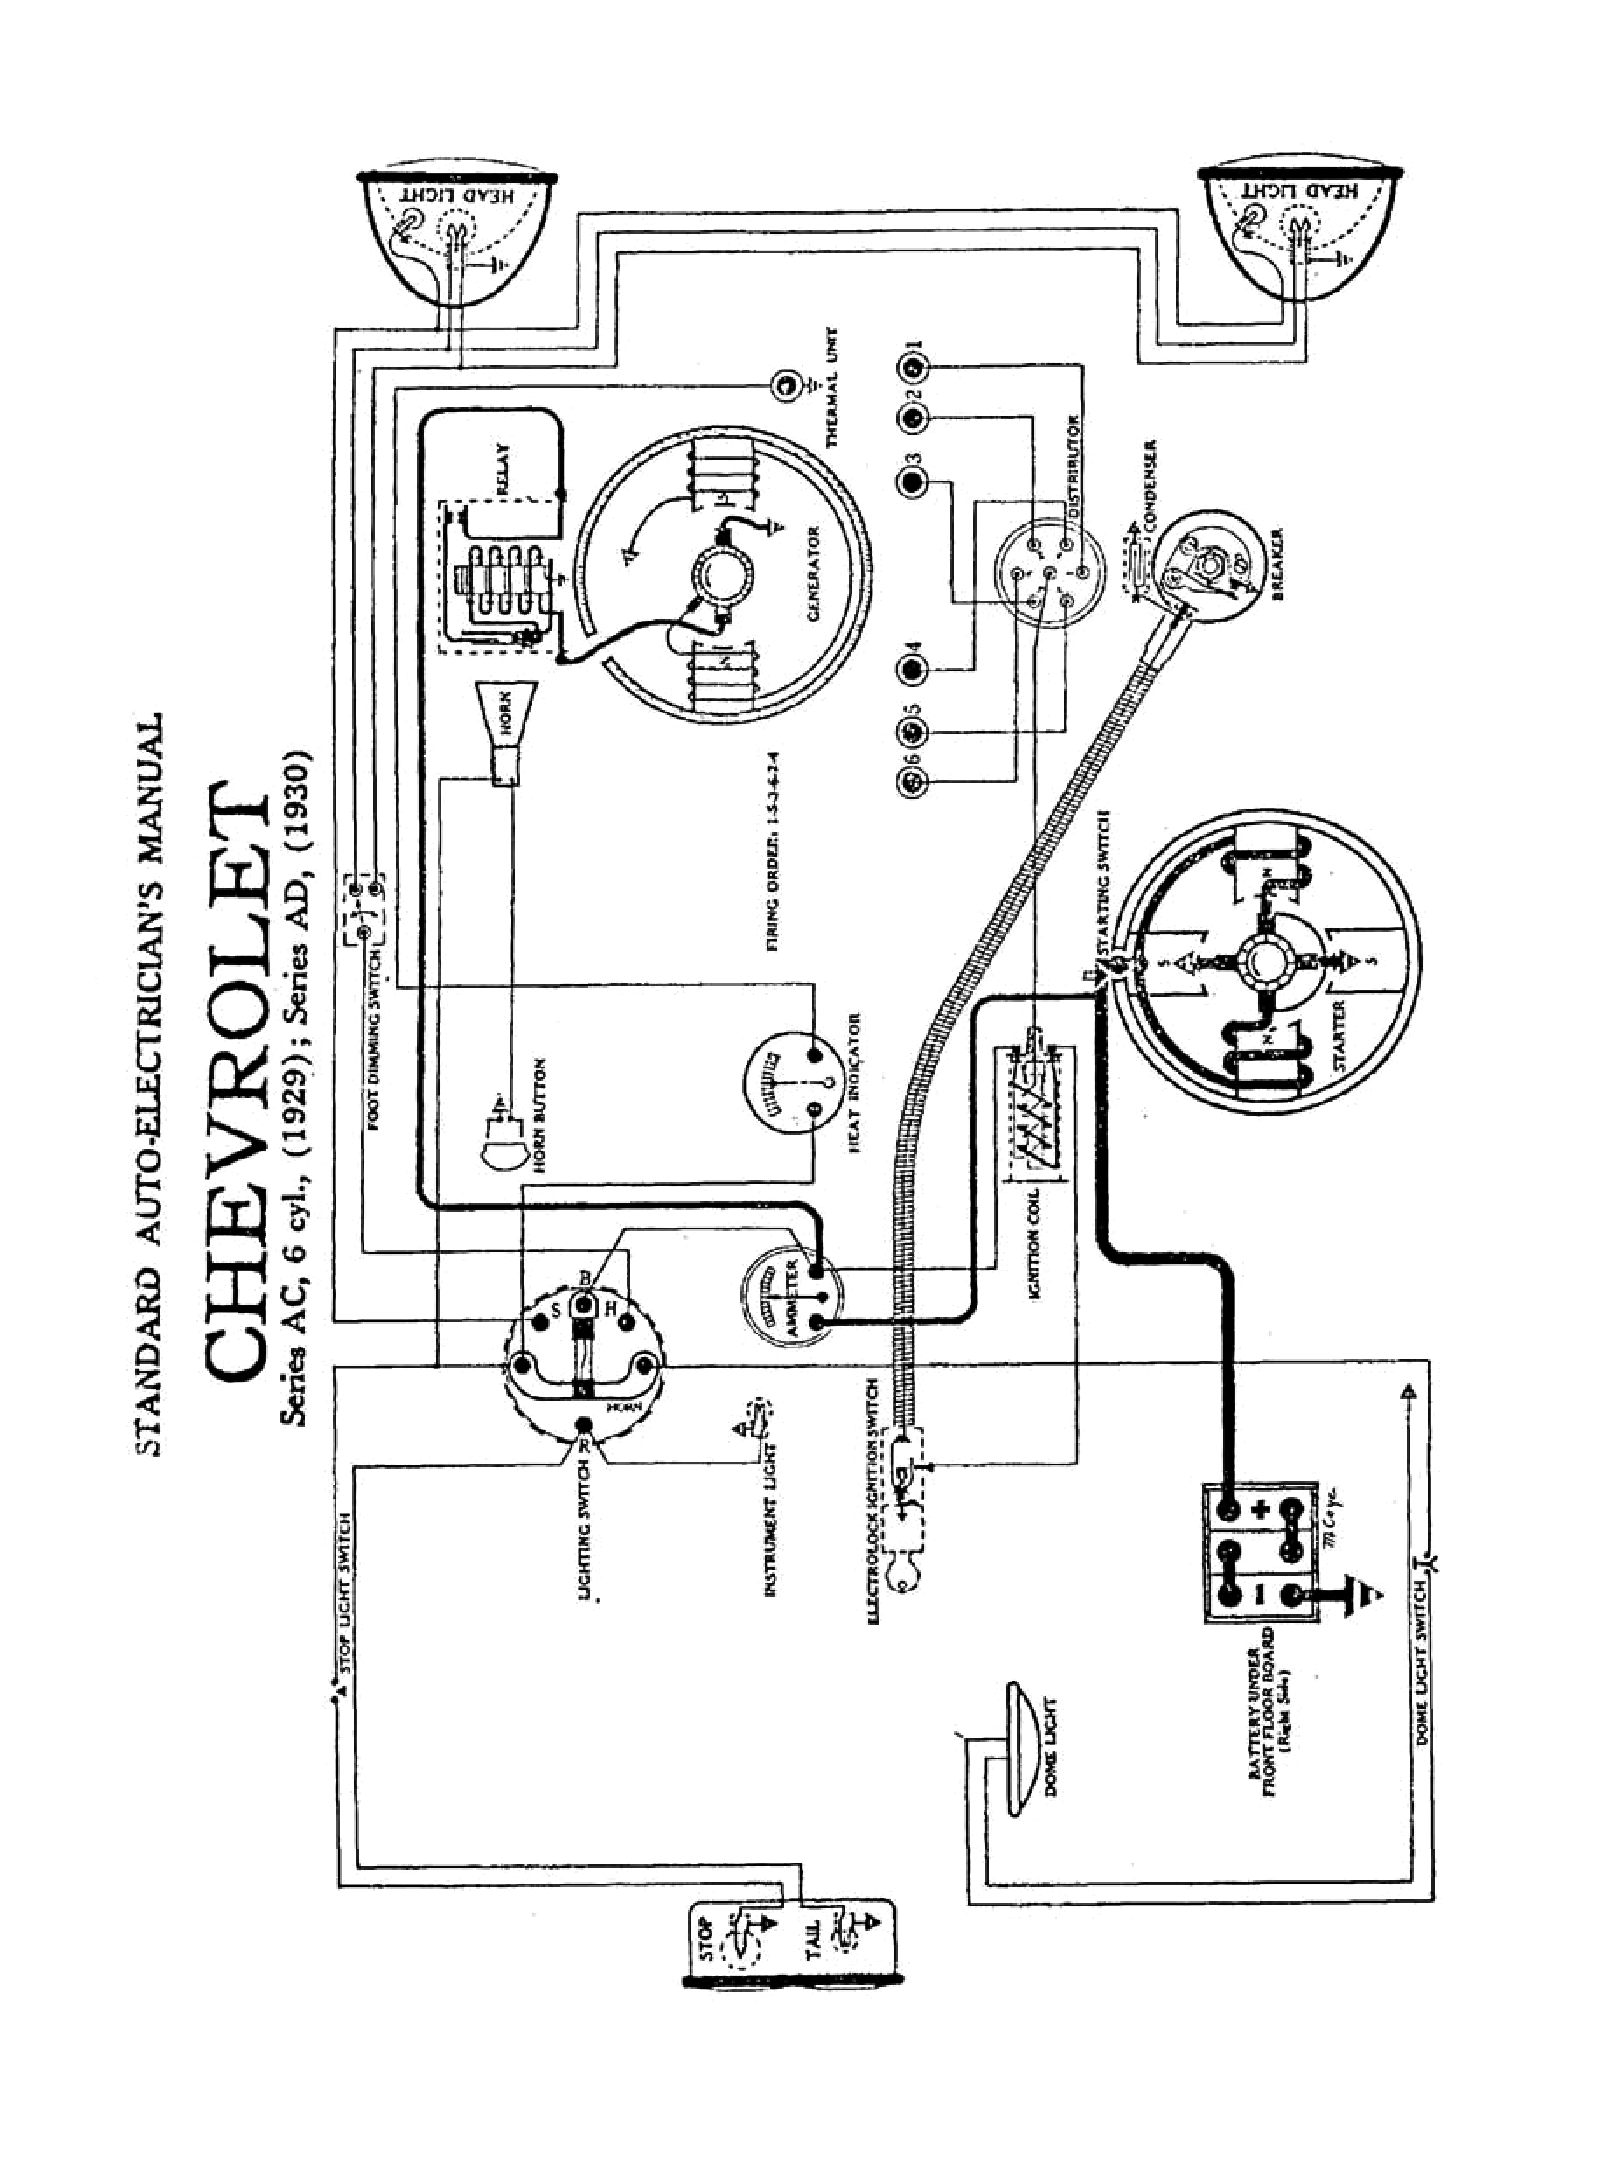 Headlight Electrical Diagram